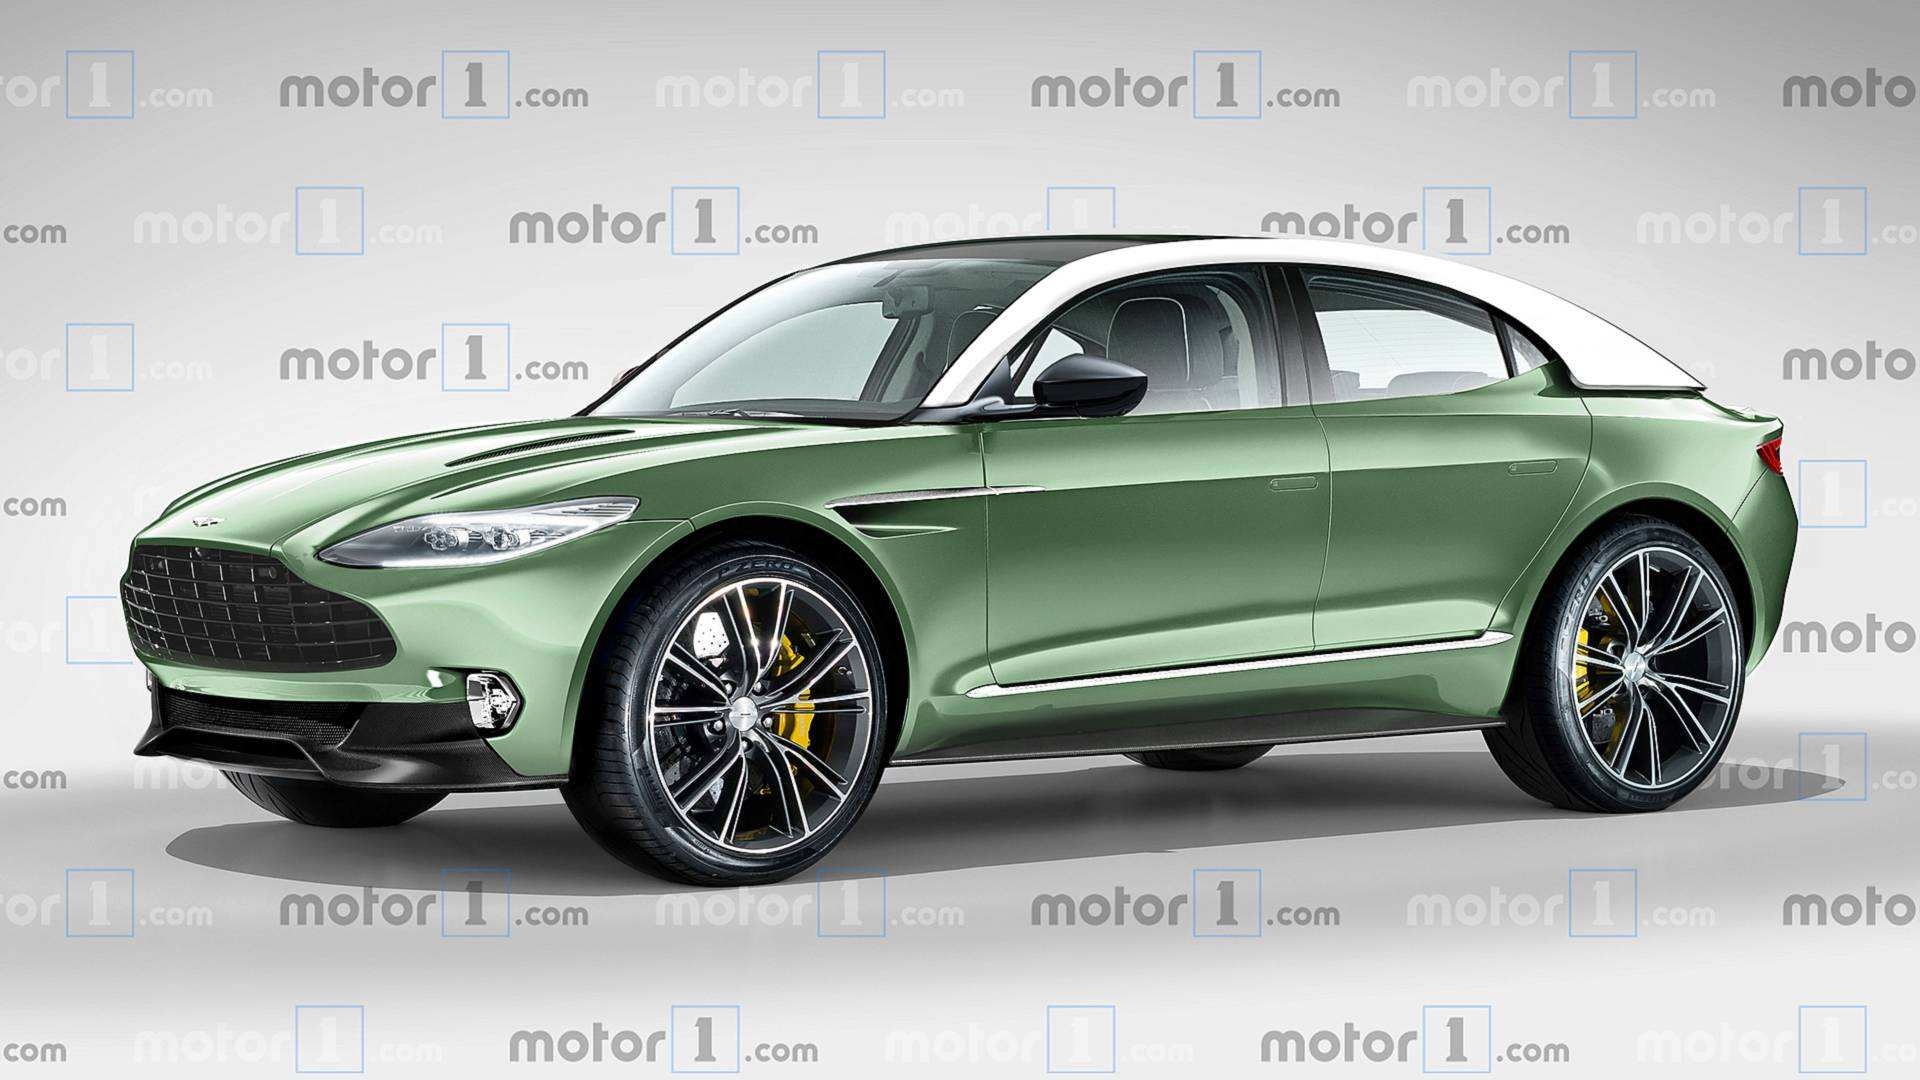 47 Great 2020 Aston Martin Dbx Specs for 2020 Aston Martin Dbx